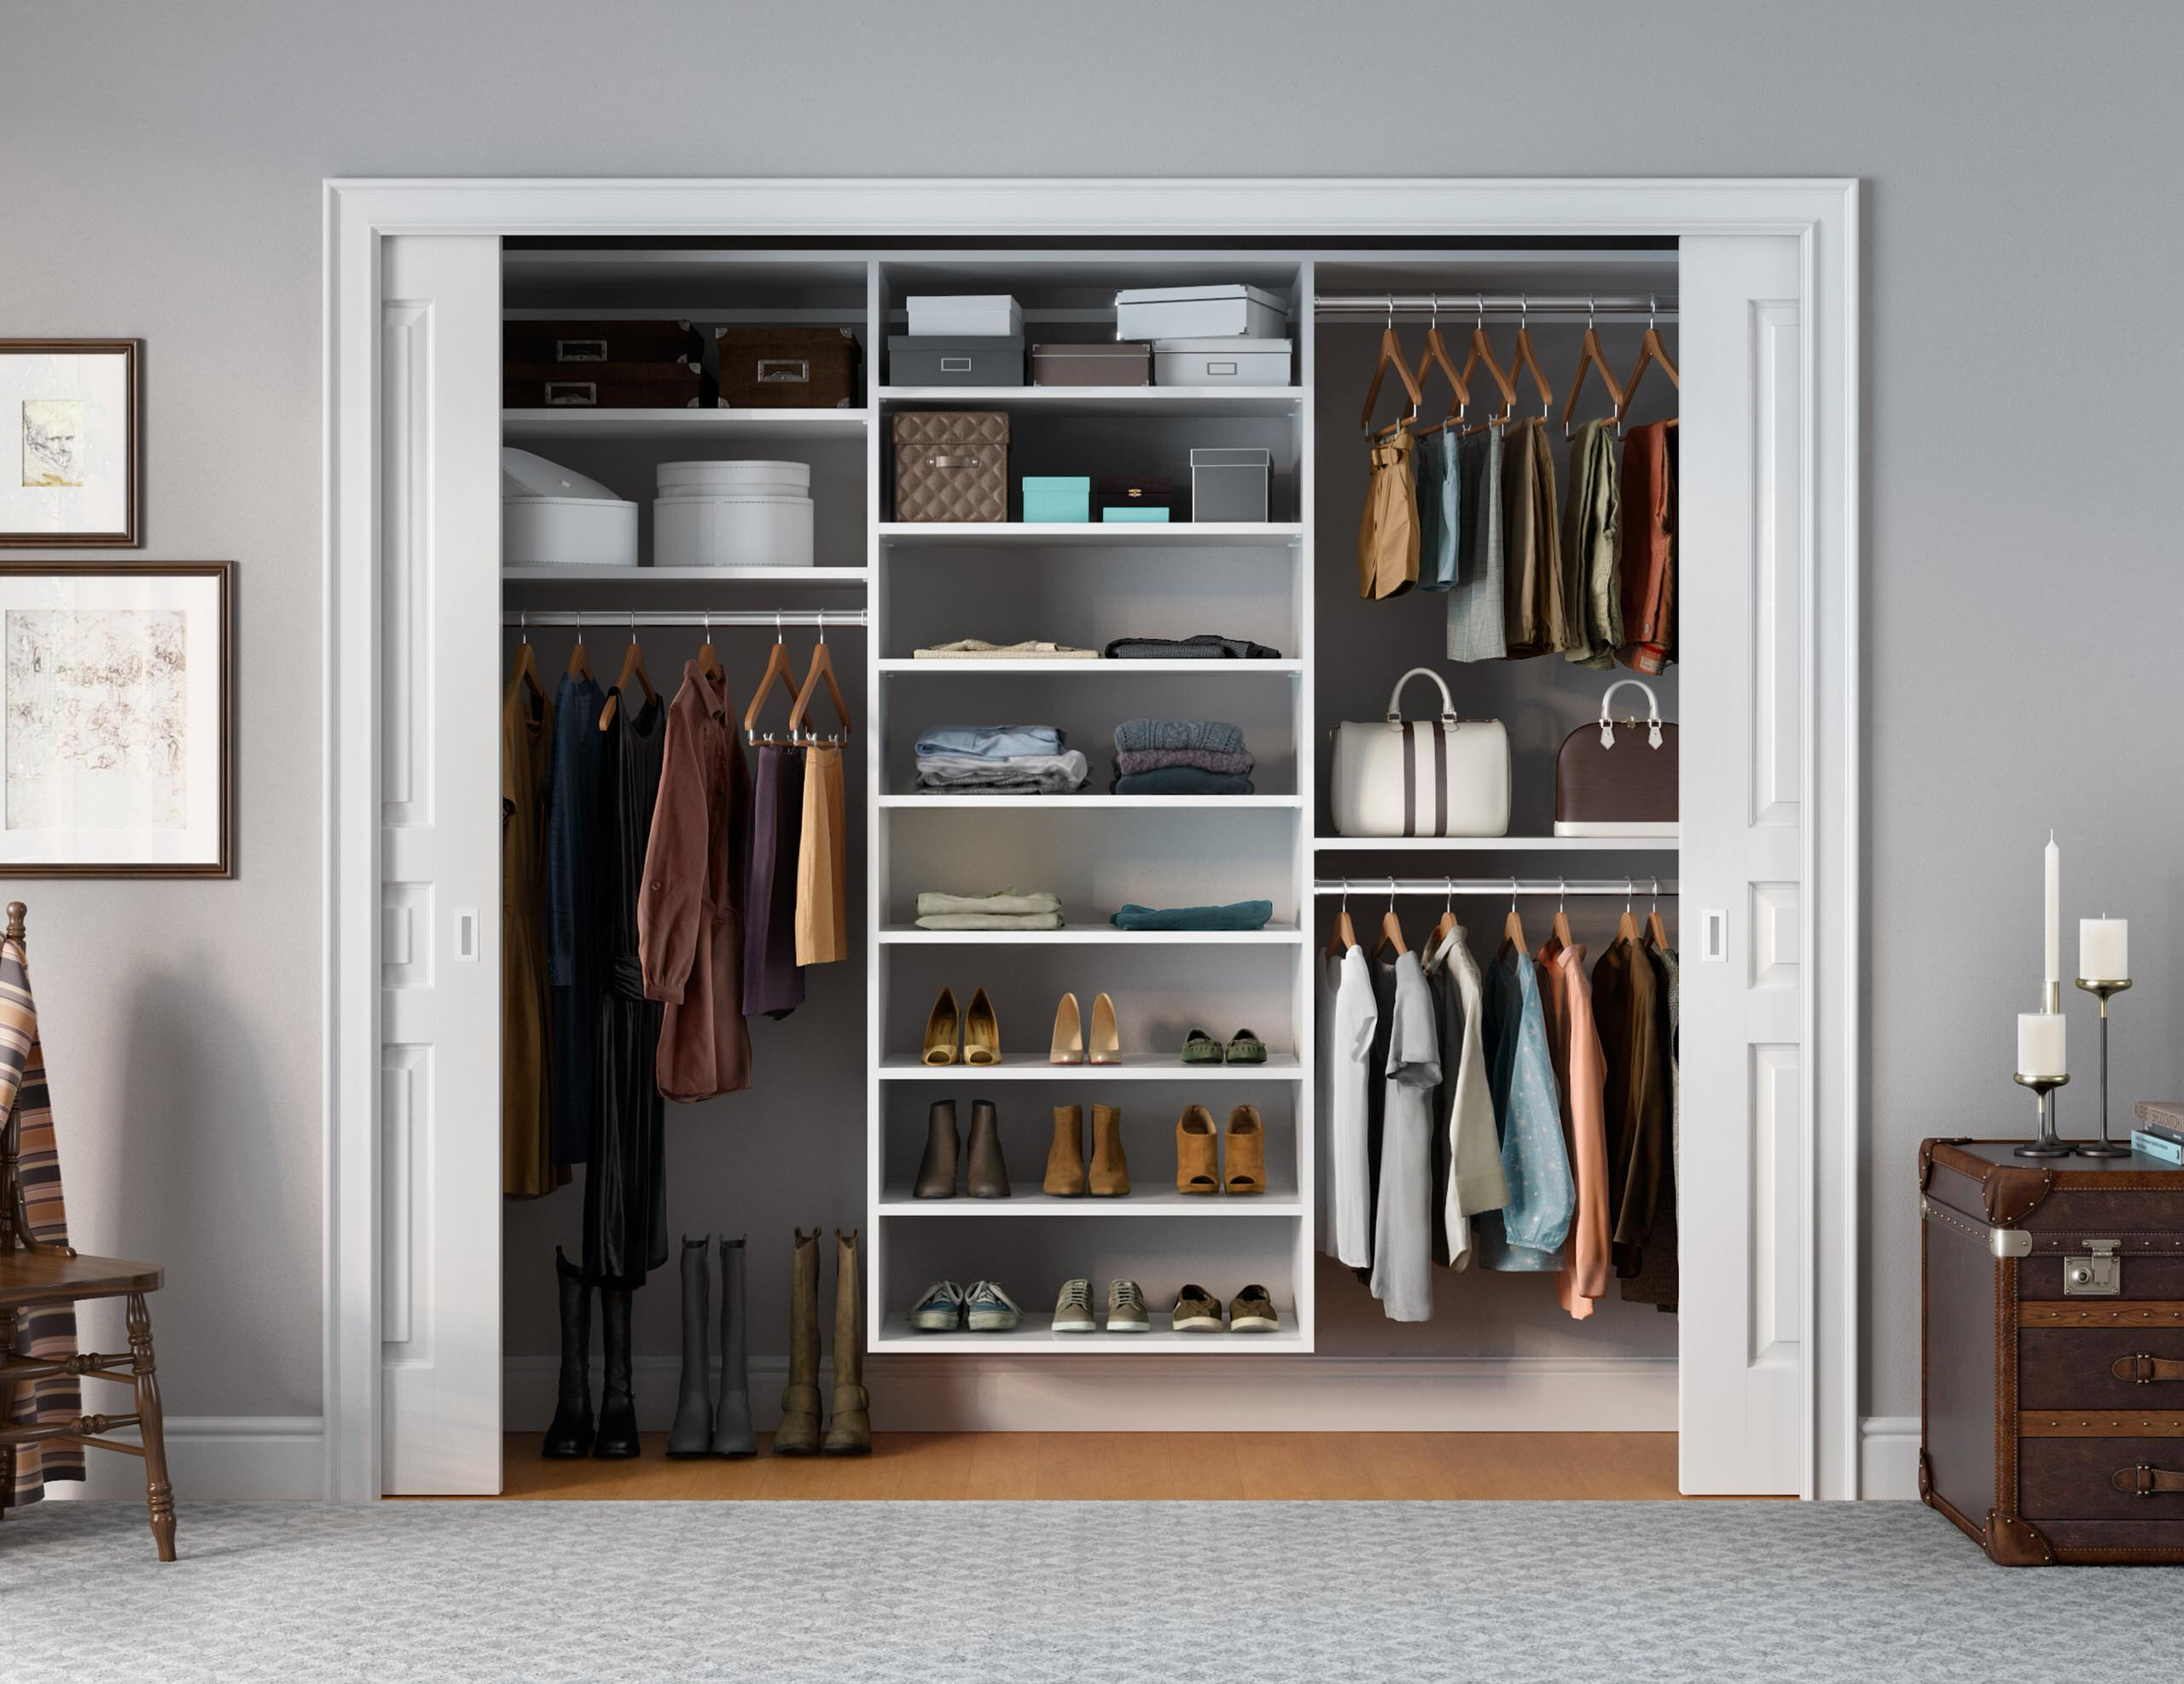 Picture of: 75 Beautiful Small Closet Pictures Ideas November 2020 Houzz